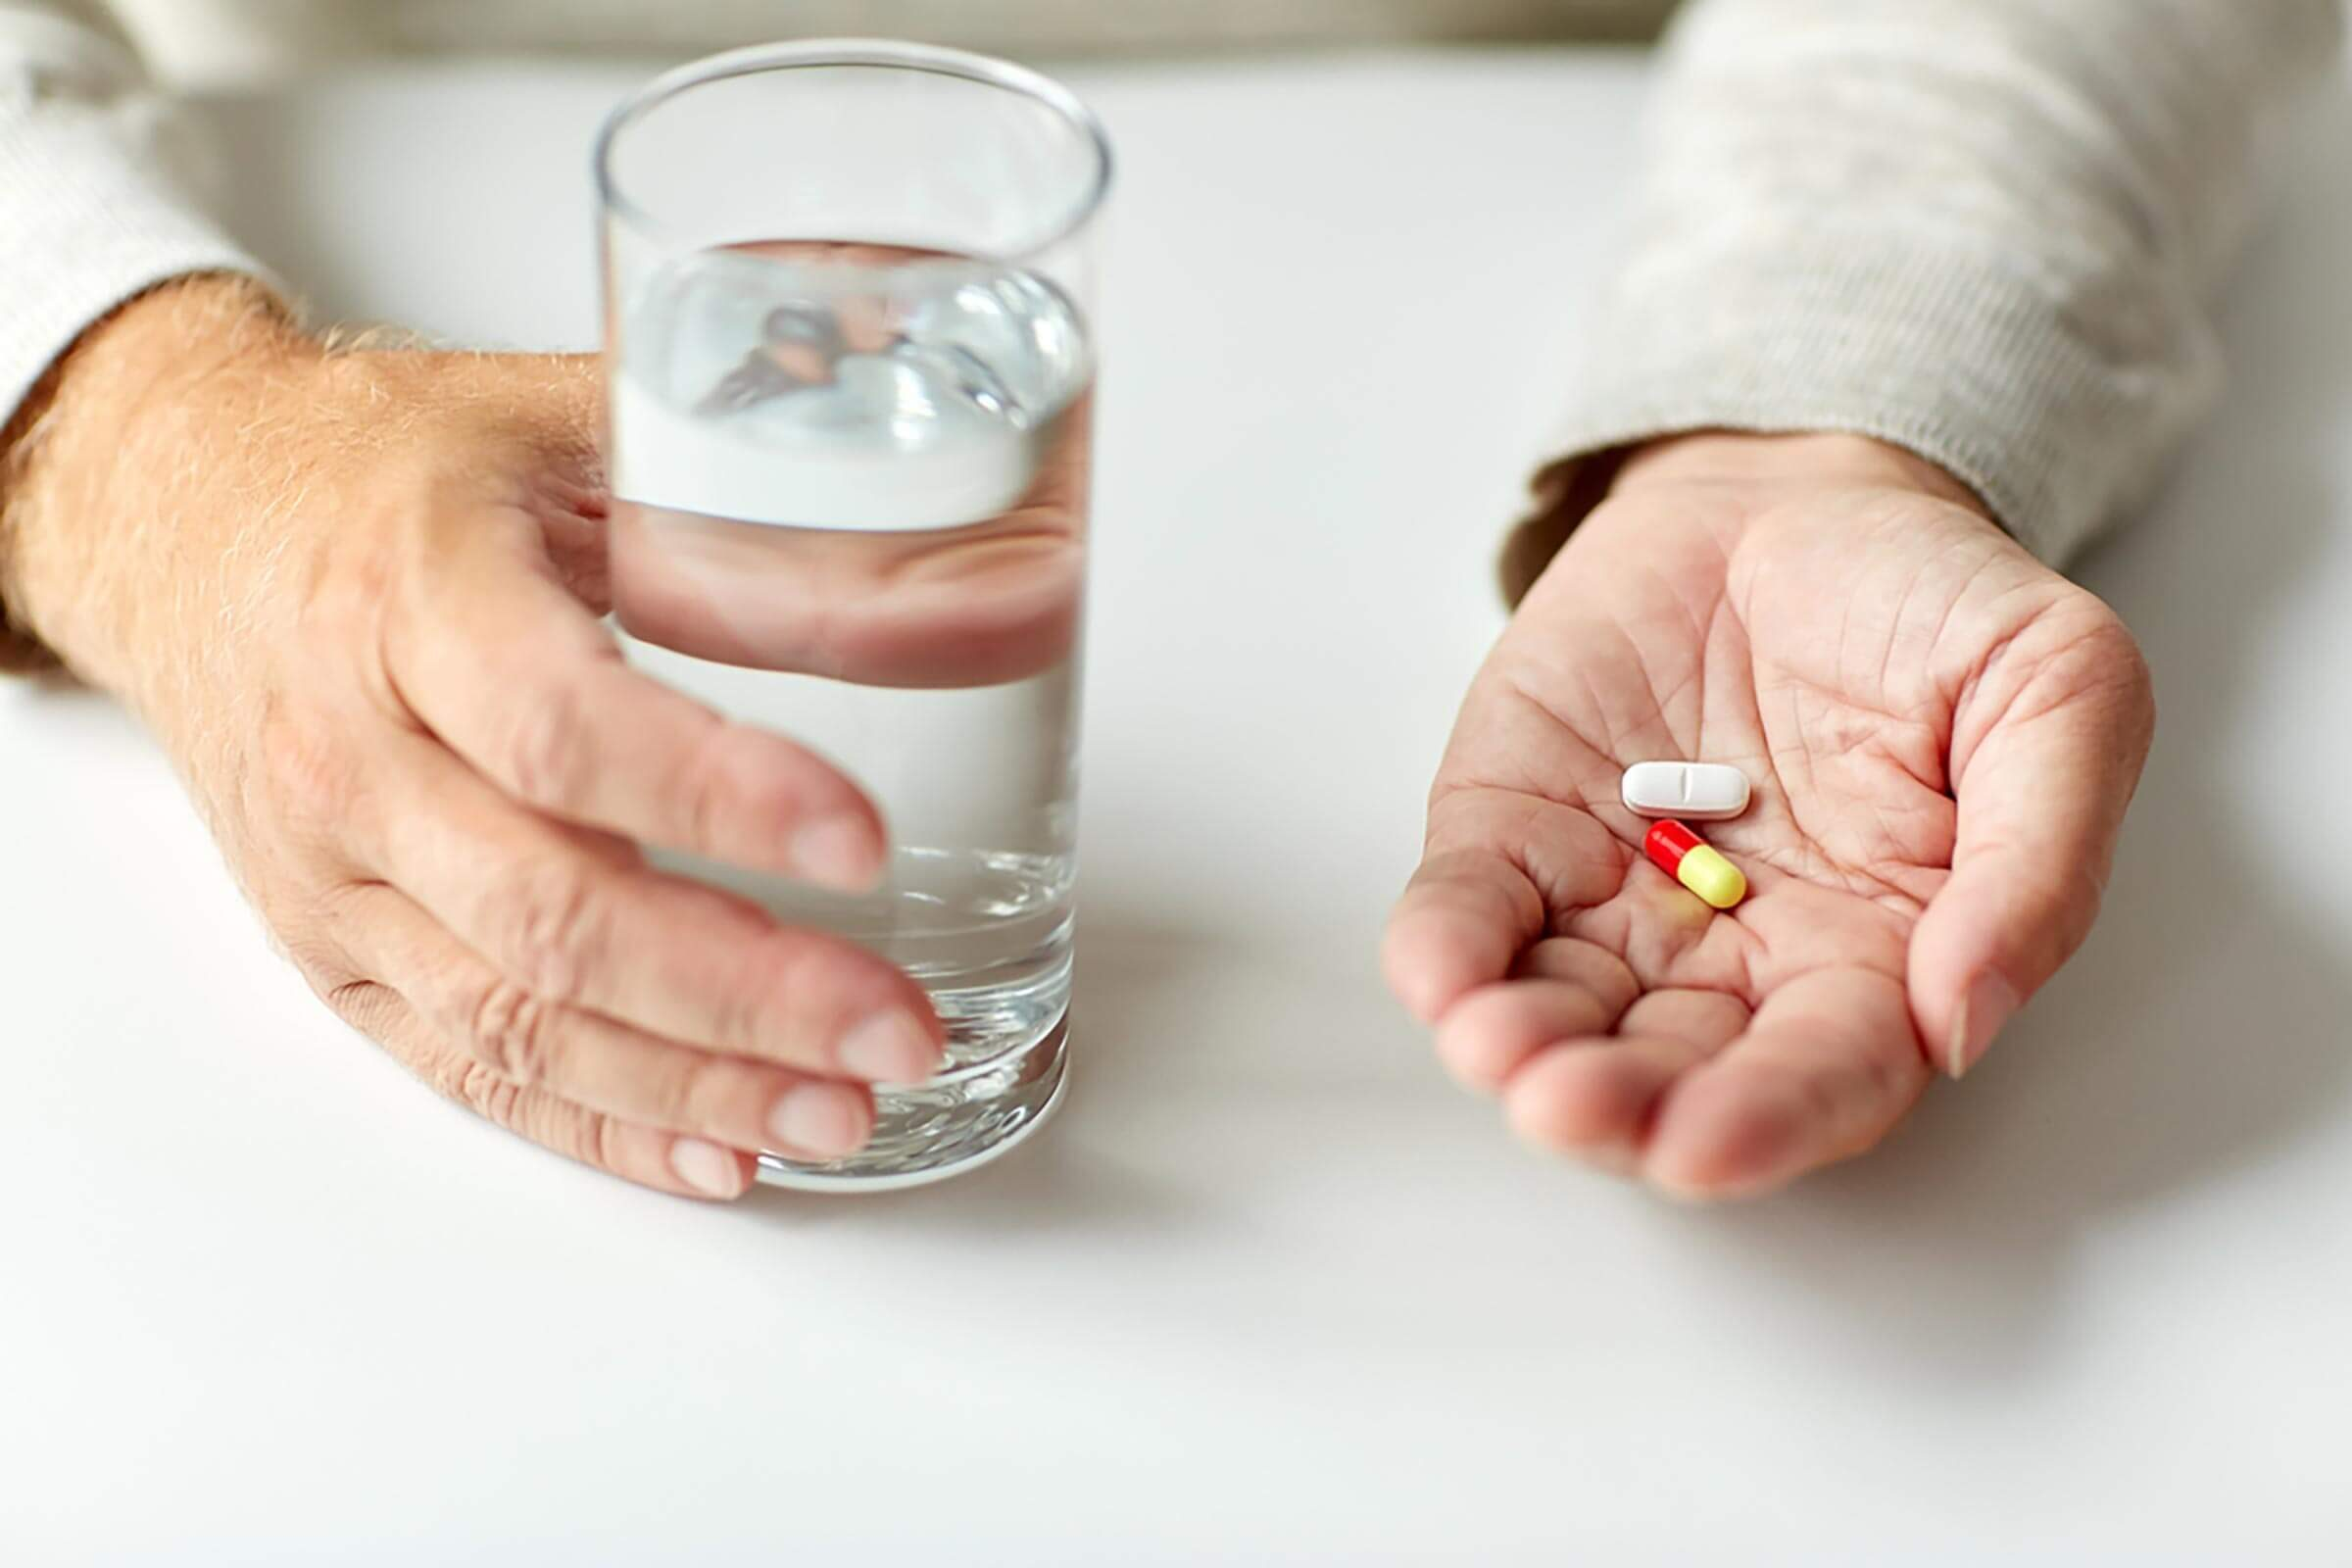 hand holding medication